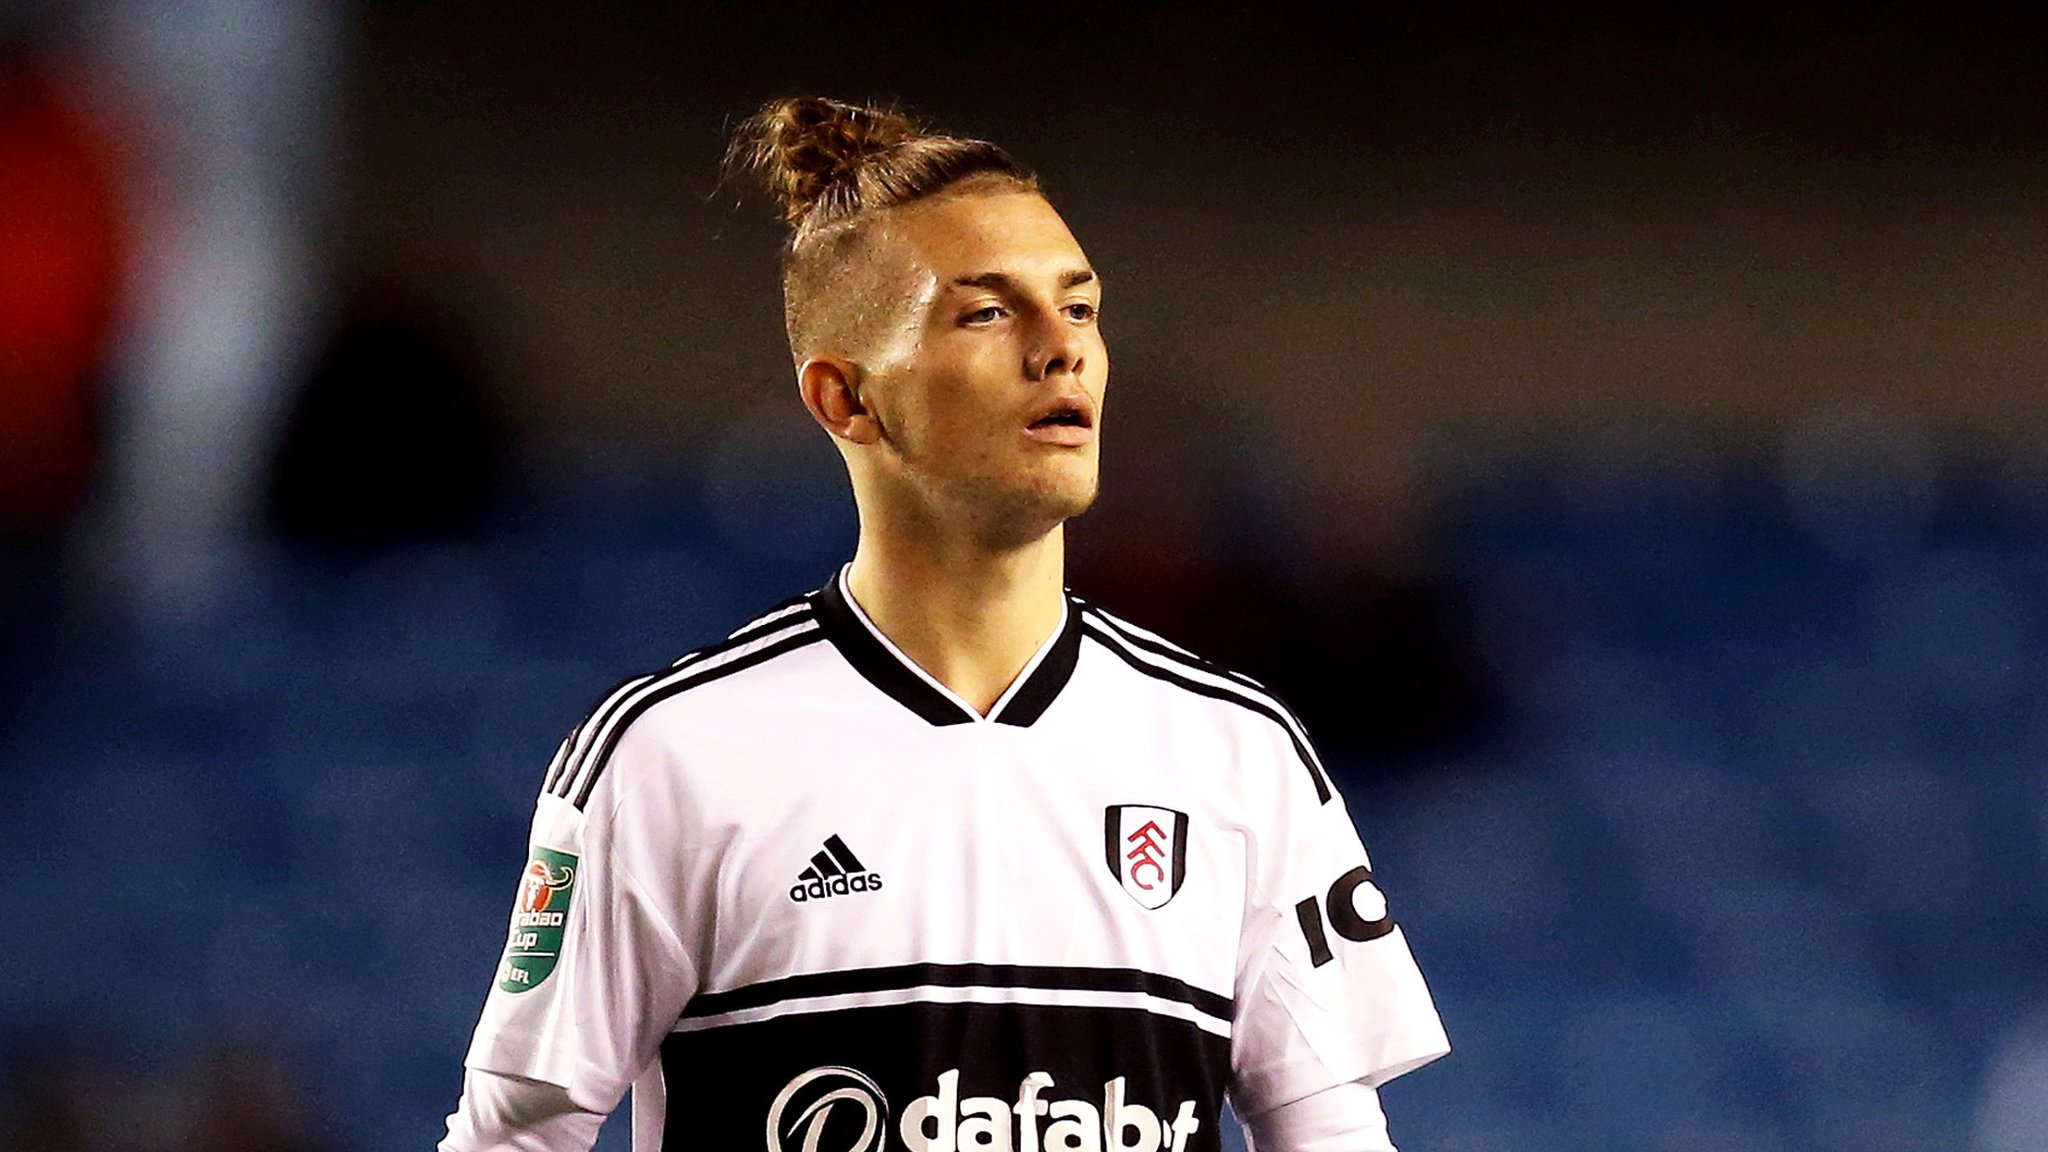 Elliott, 15, takes tests at school then makes debut as Fulham beat Millwall